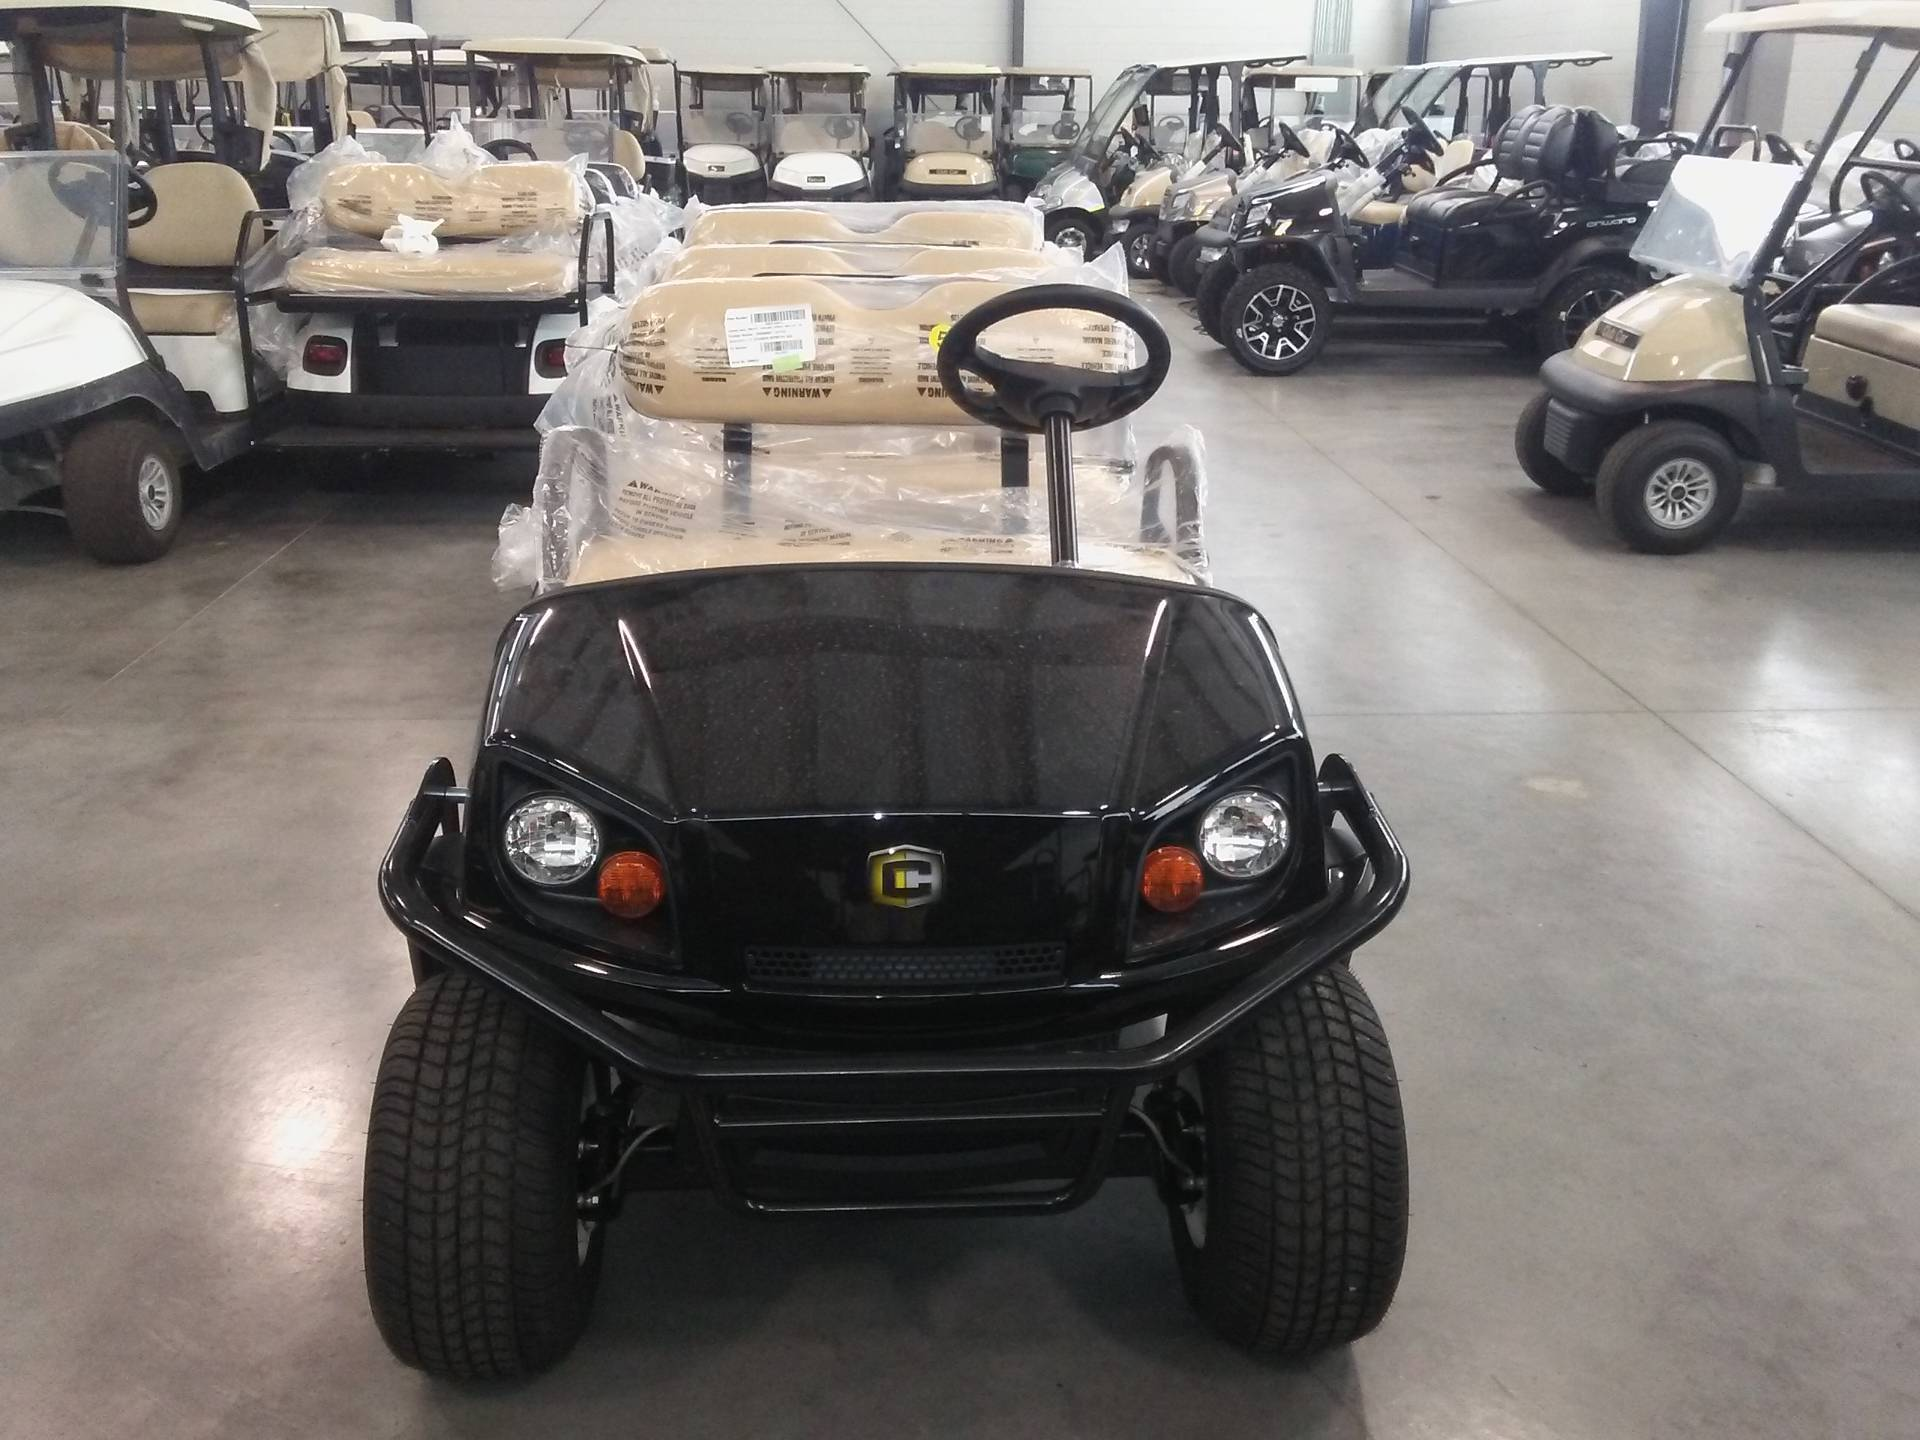 2019 Cushman Shuttle 8 EFI Gas in Lakeland, Florida - Photo 4